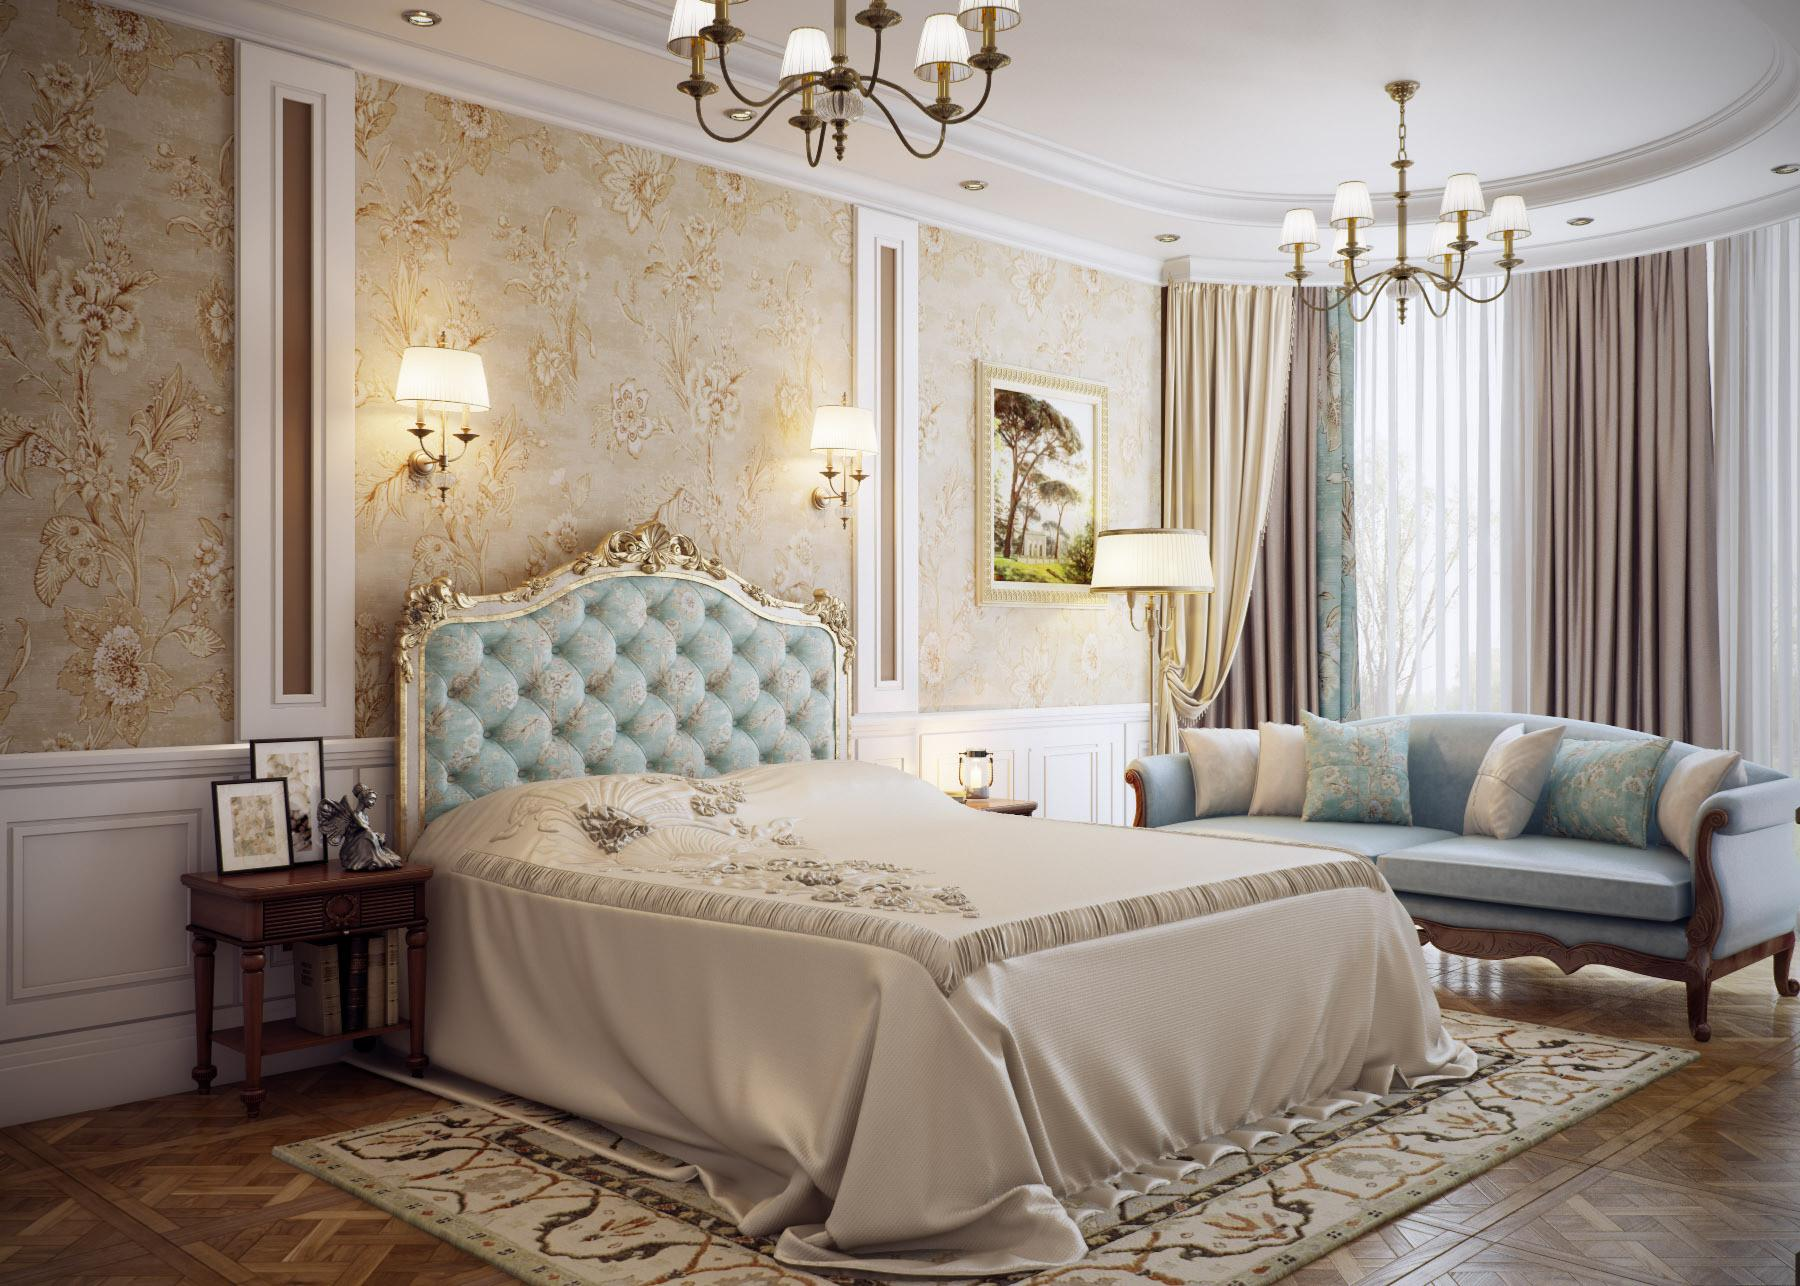 Traditional Interior Design Ideas: Lightweight Classics. King size bed with quilted accent headboard